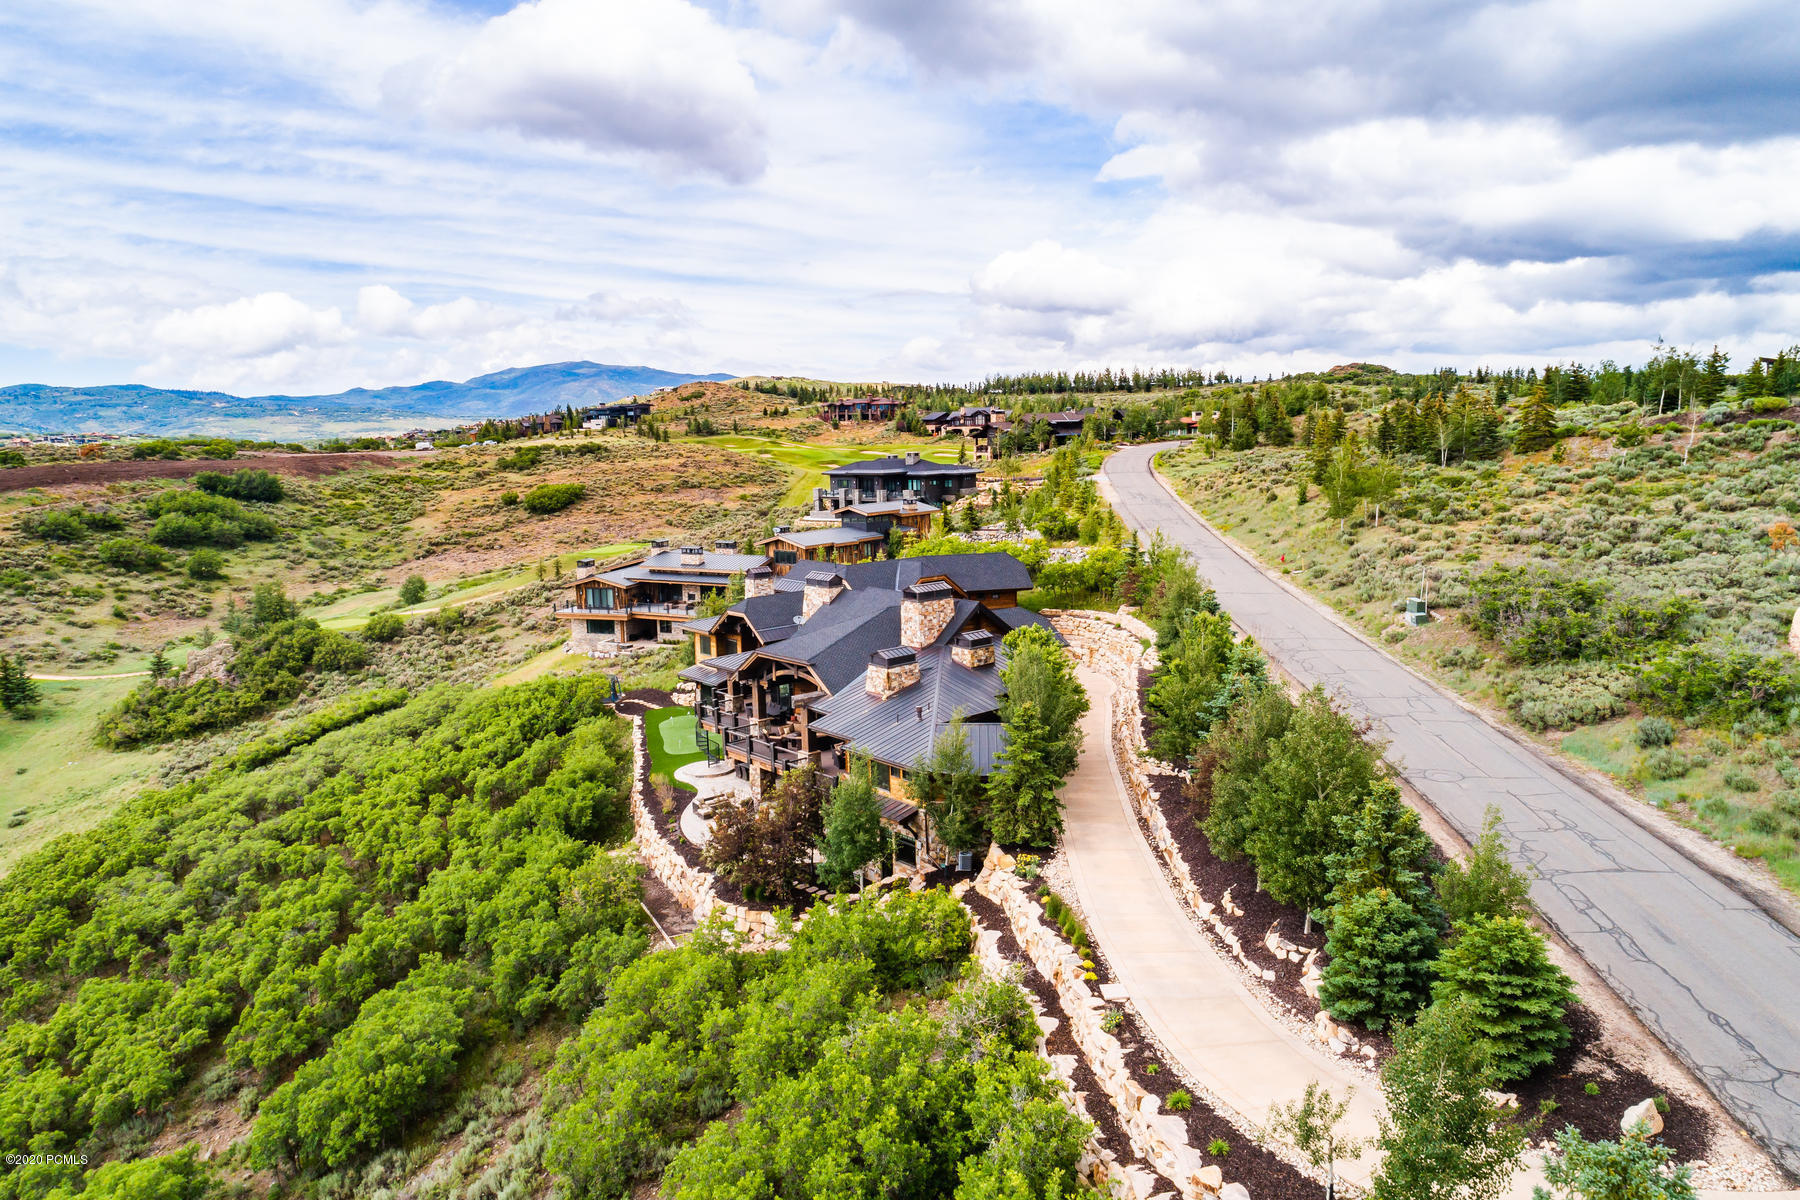 8435 Ranch Garden Road, Park City, Utah 84098, 6 Bedrooms Bedrooms, ,8 BathroomsBathrooms,Single Family,For Sale,Ranch Garden,20190109112430415765000000